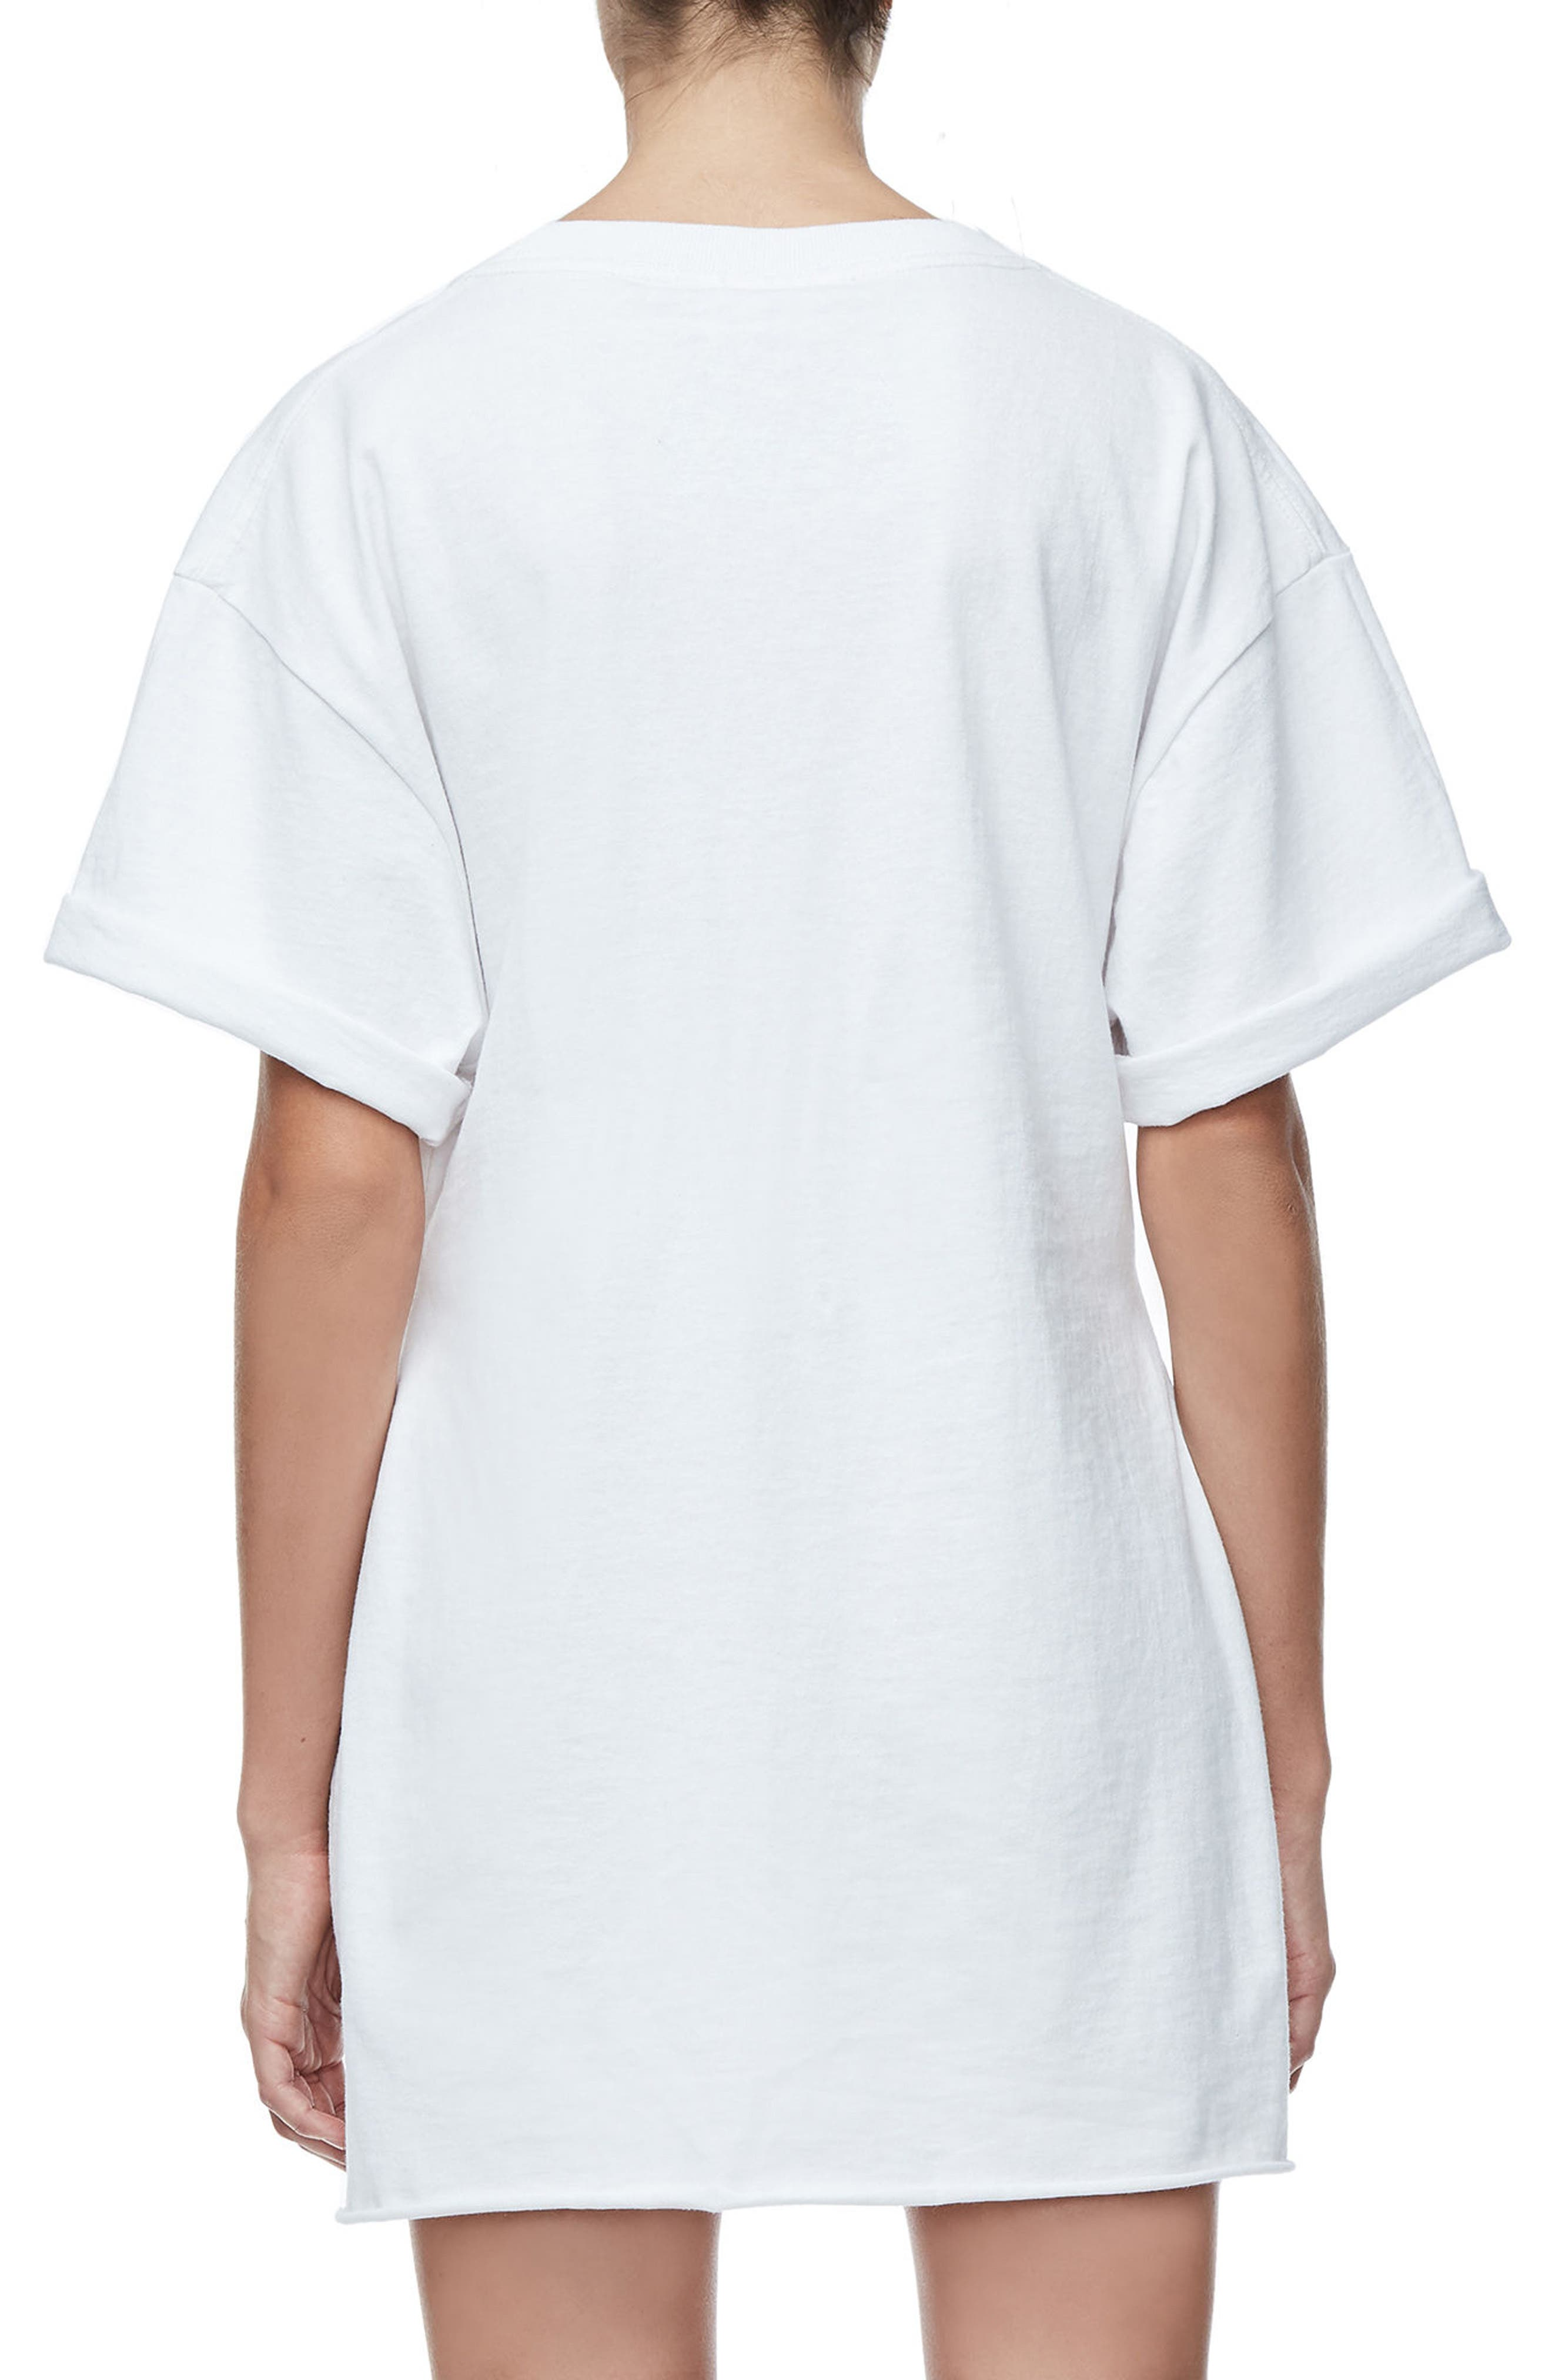 Goodies Graphic Oversize Tee,                             Alternate thumbnail 2, color,